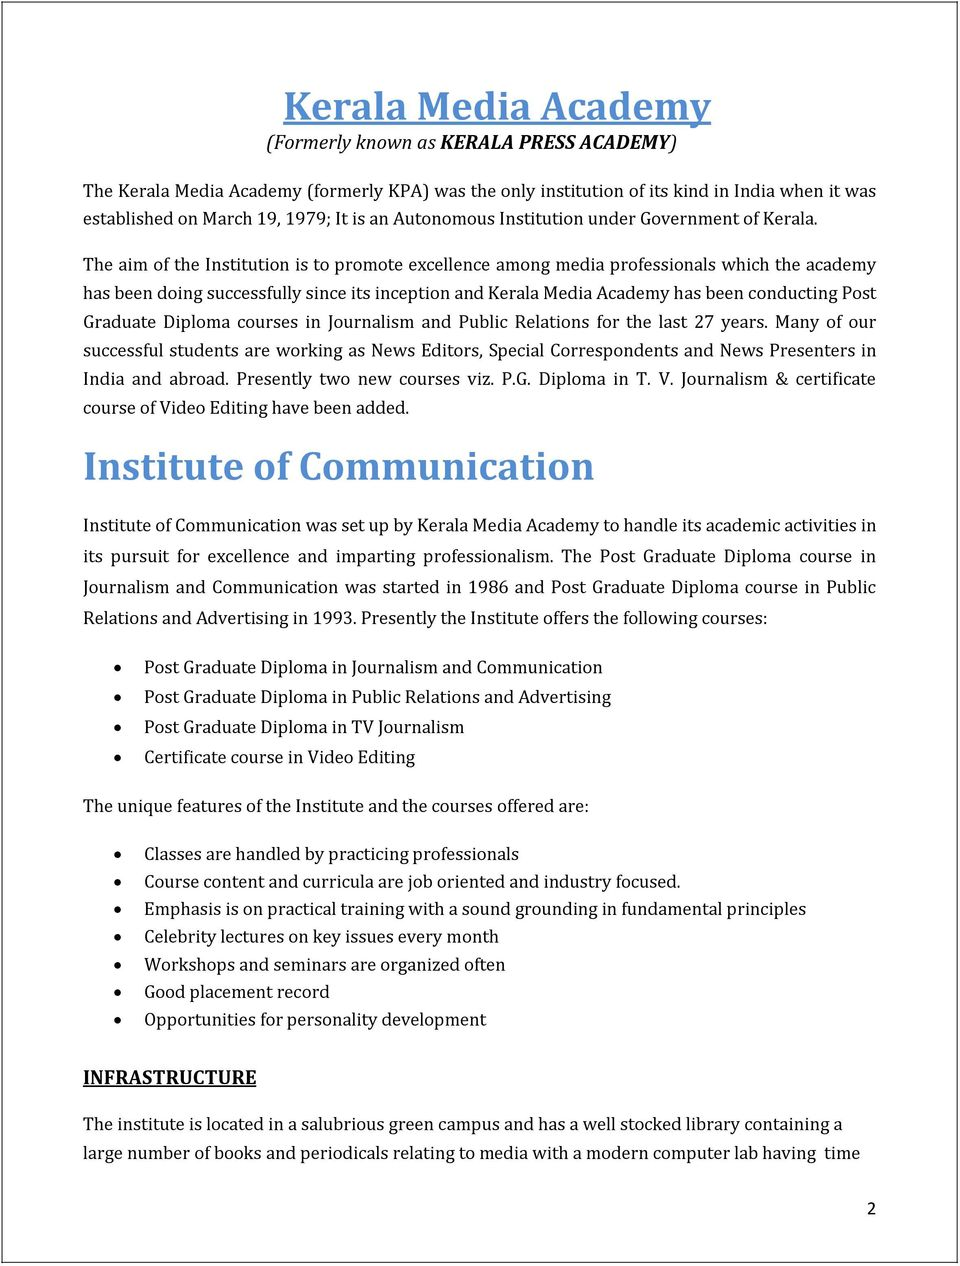 The aim of the Institution is to promote excellence among media professionals which the academy has been doing successfully since its inception and Kerala Media Academy has been conducting Post